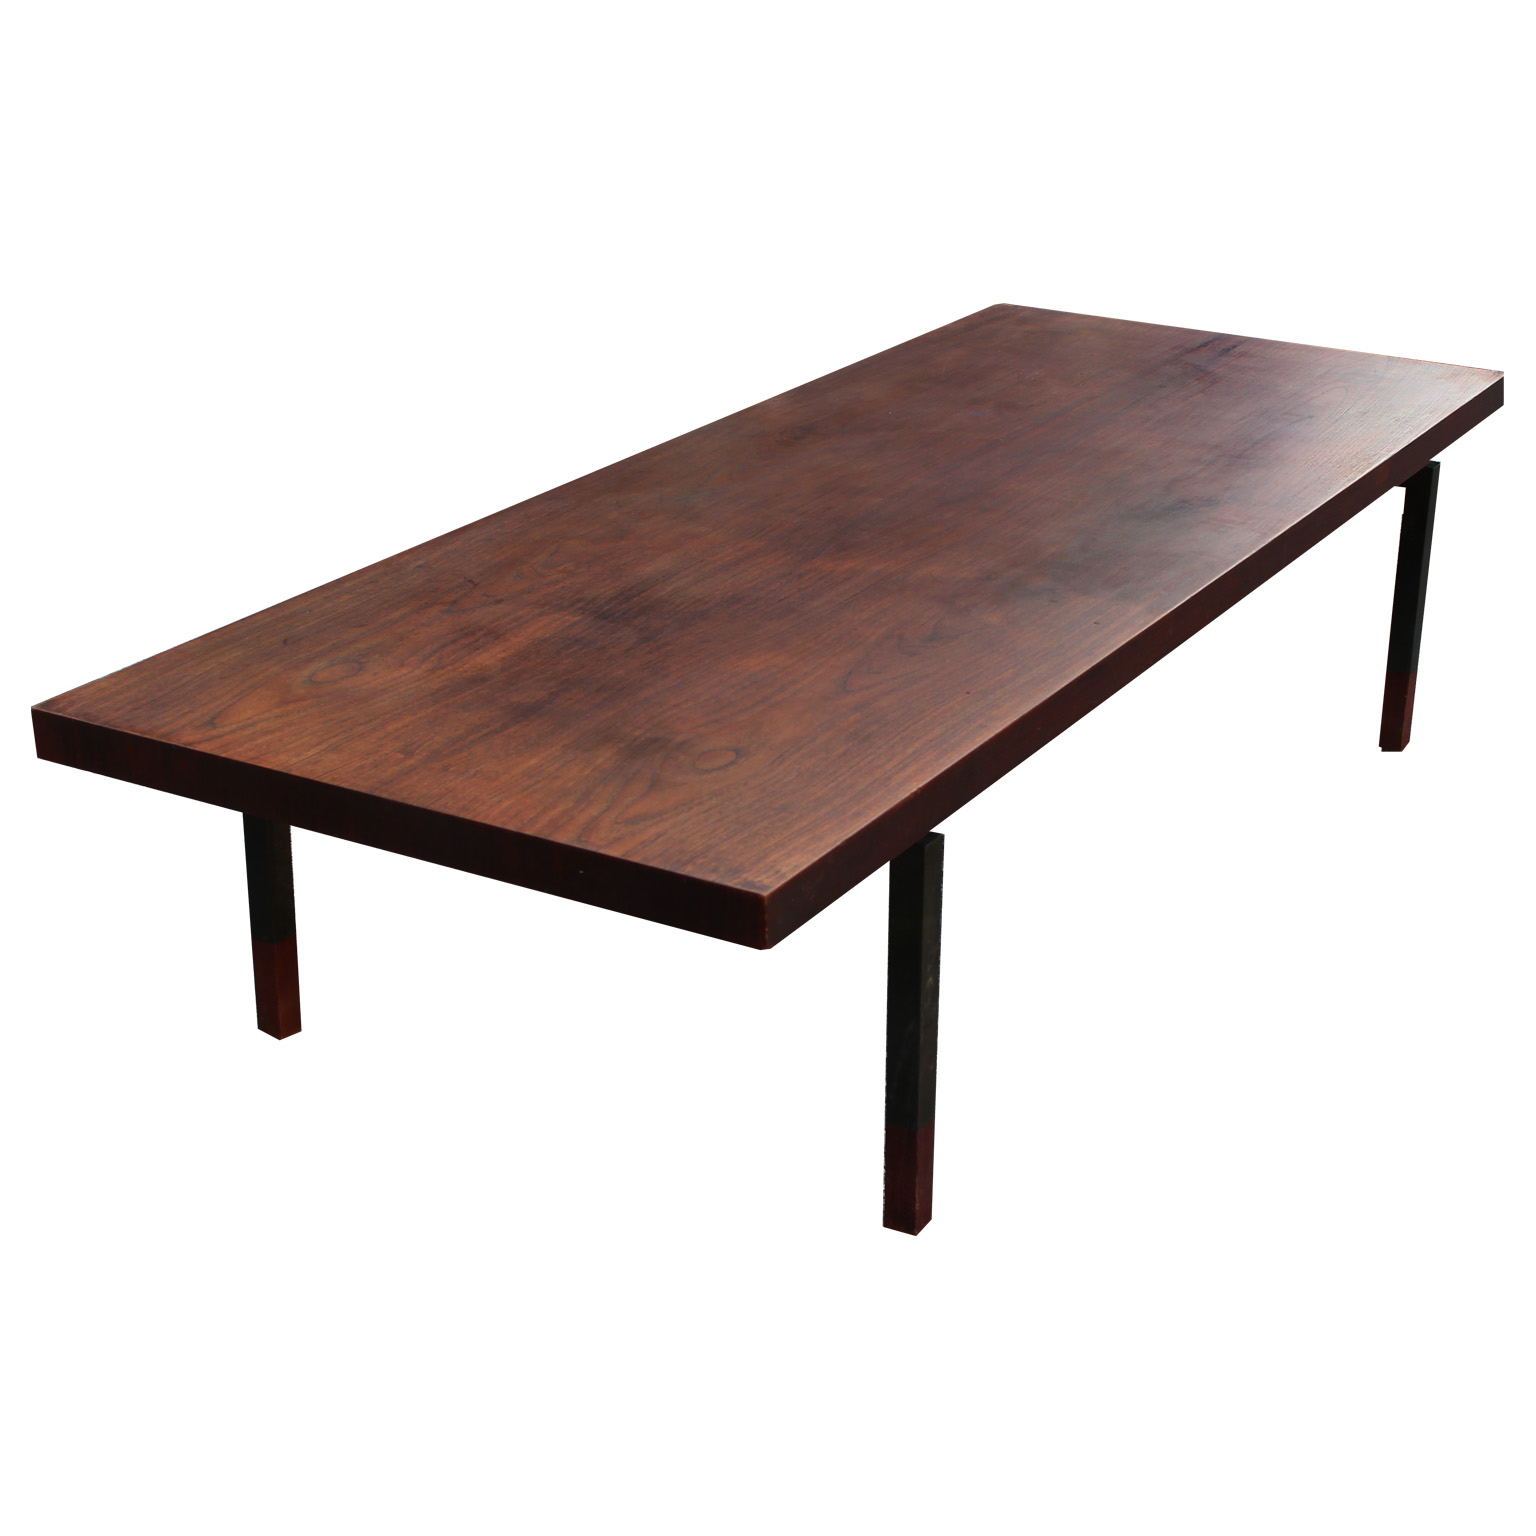 Johannes aasbjerg danish teak coffee table for Table table table